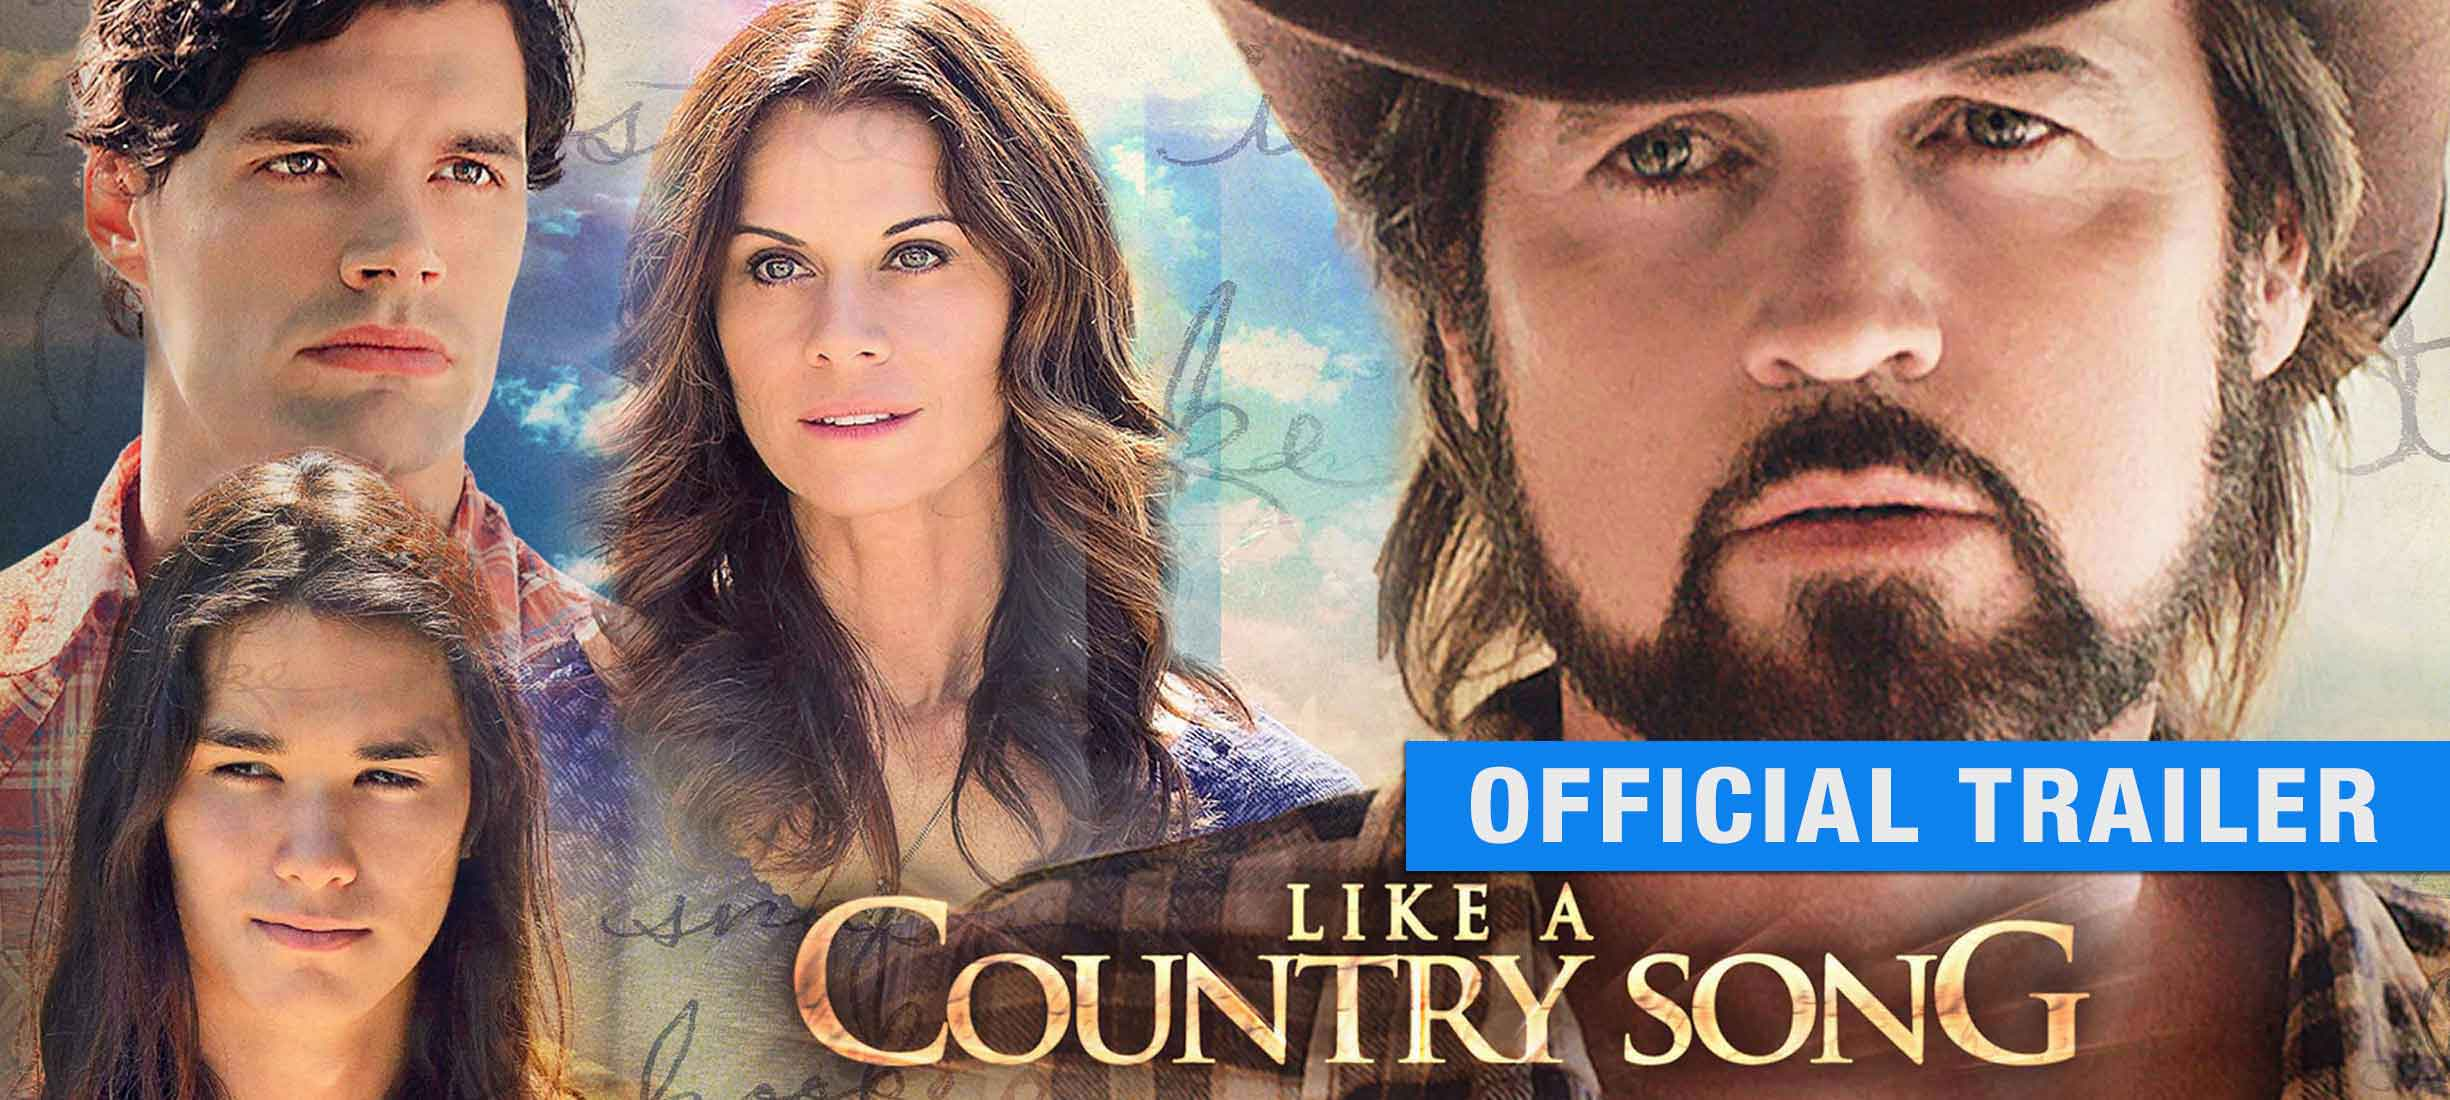 Like a Country Song: Trailer